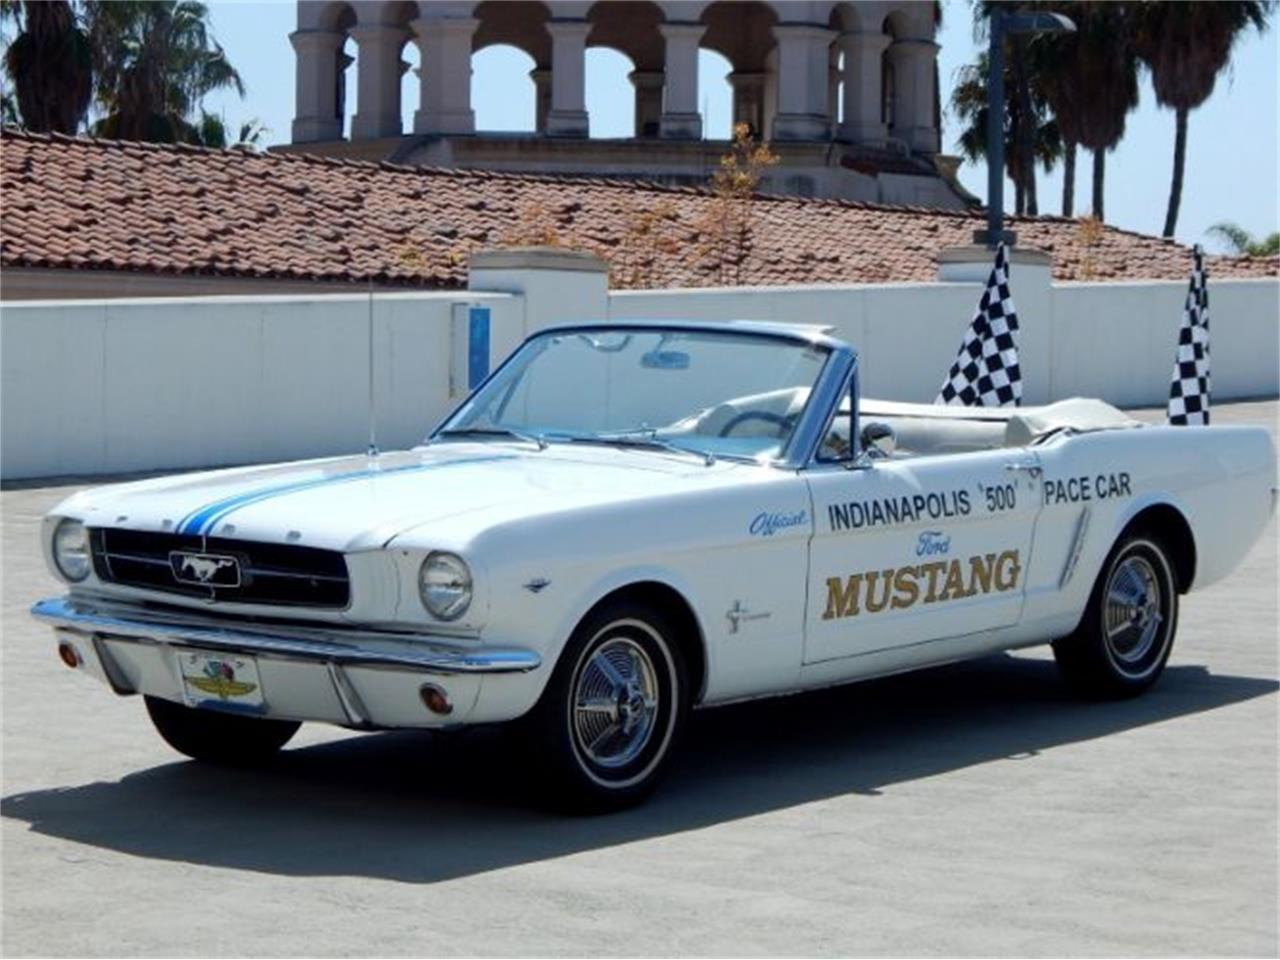 Large picture of 65 mustang ovyn